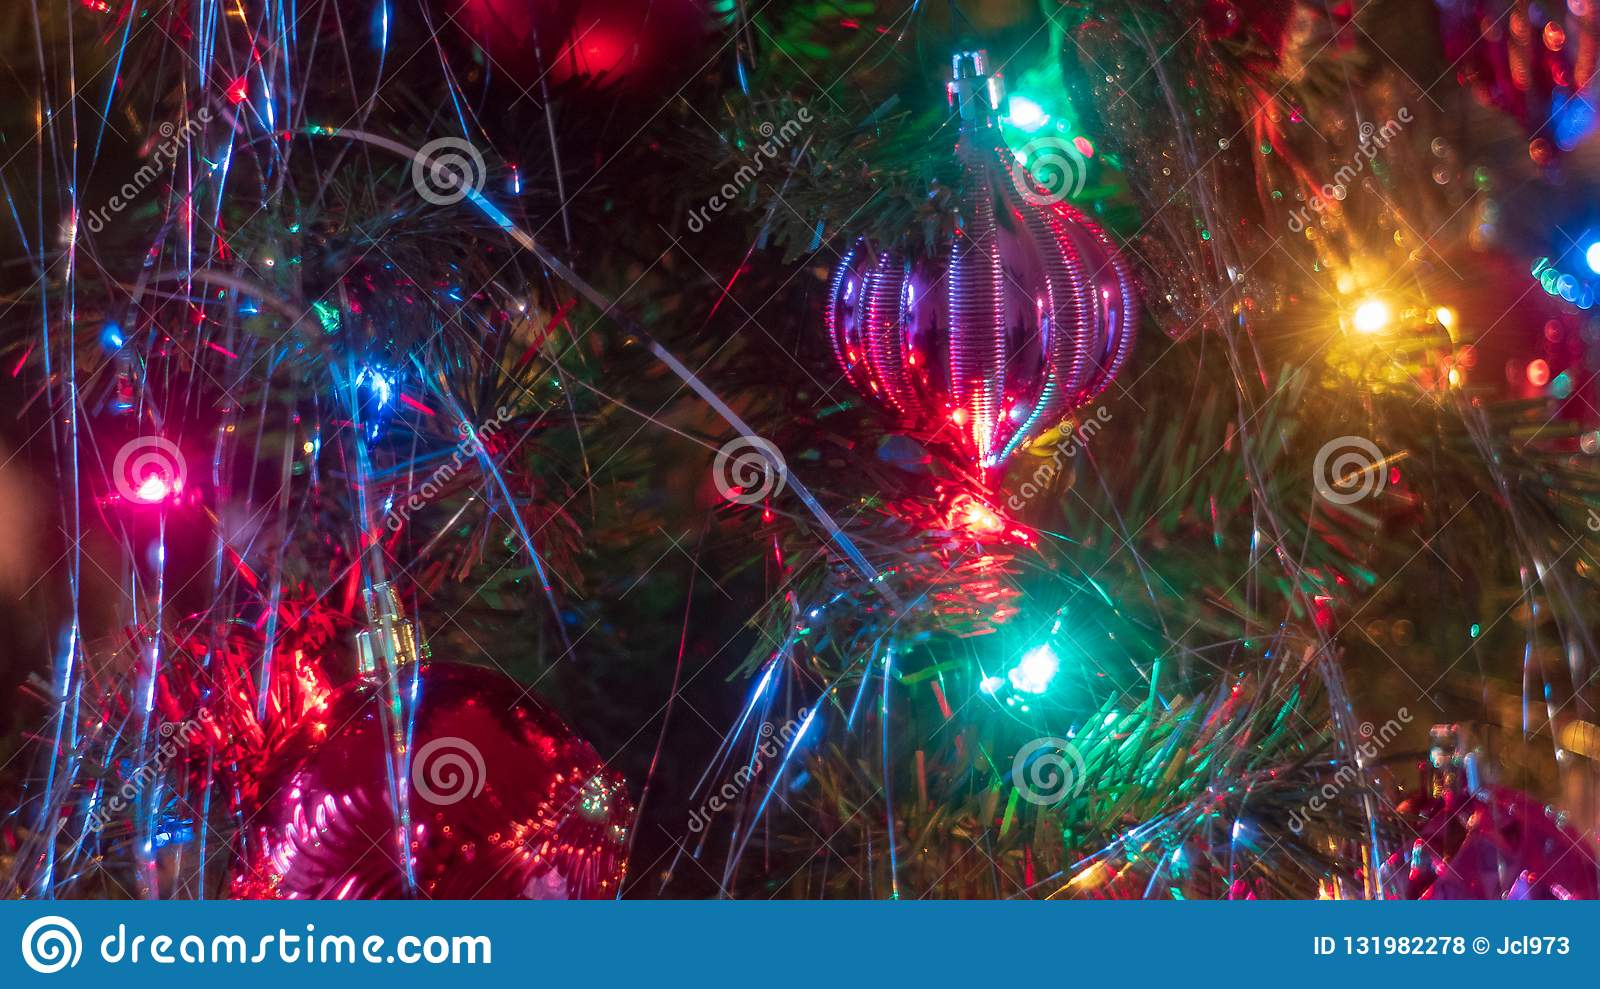 Brightly Colored, Cheery Christmas Tree Ornaments Hung Up ...